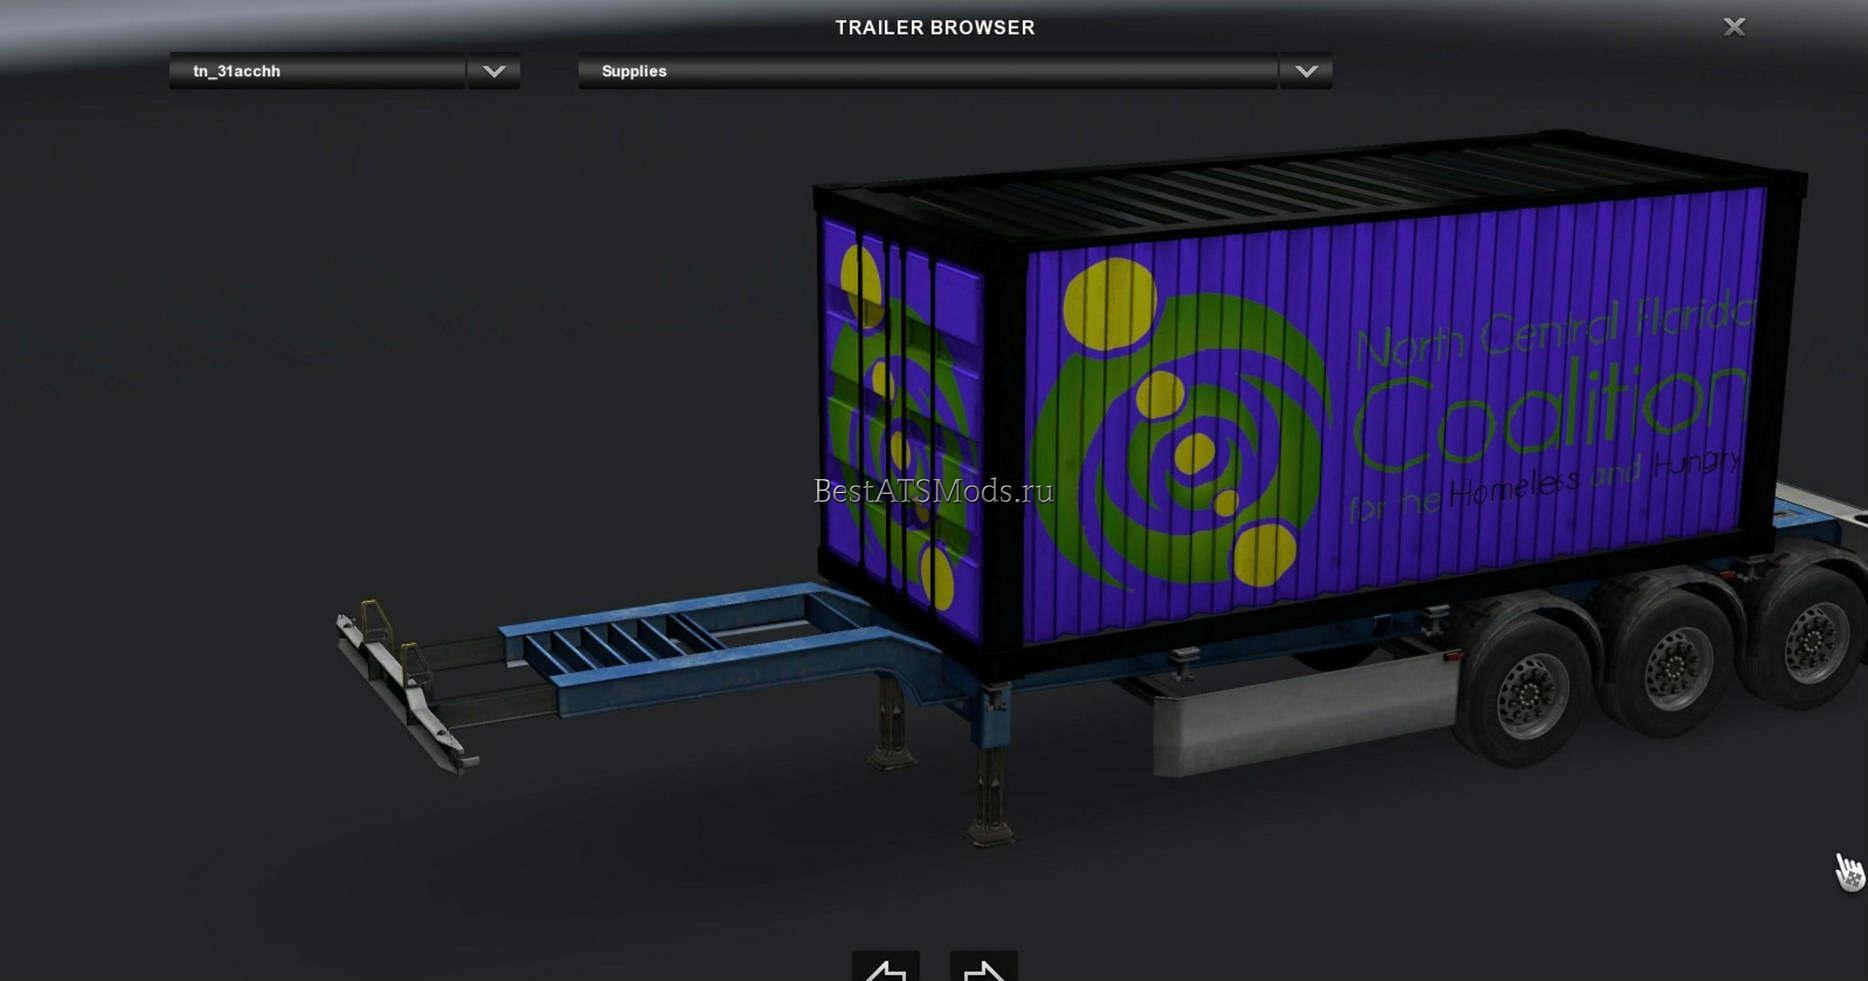 rsz_Мод_прицеп_acch_standalone_container_for_american_truck_simulator